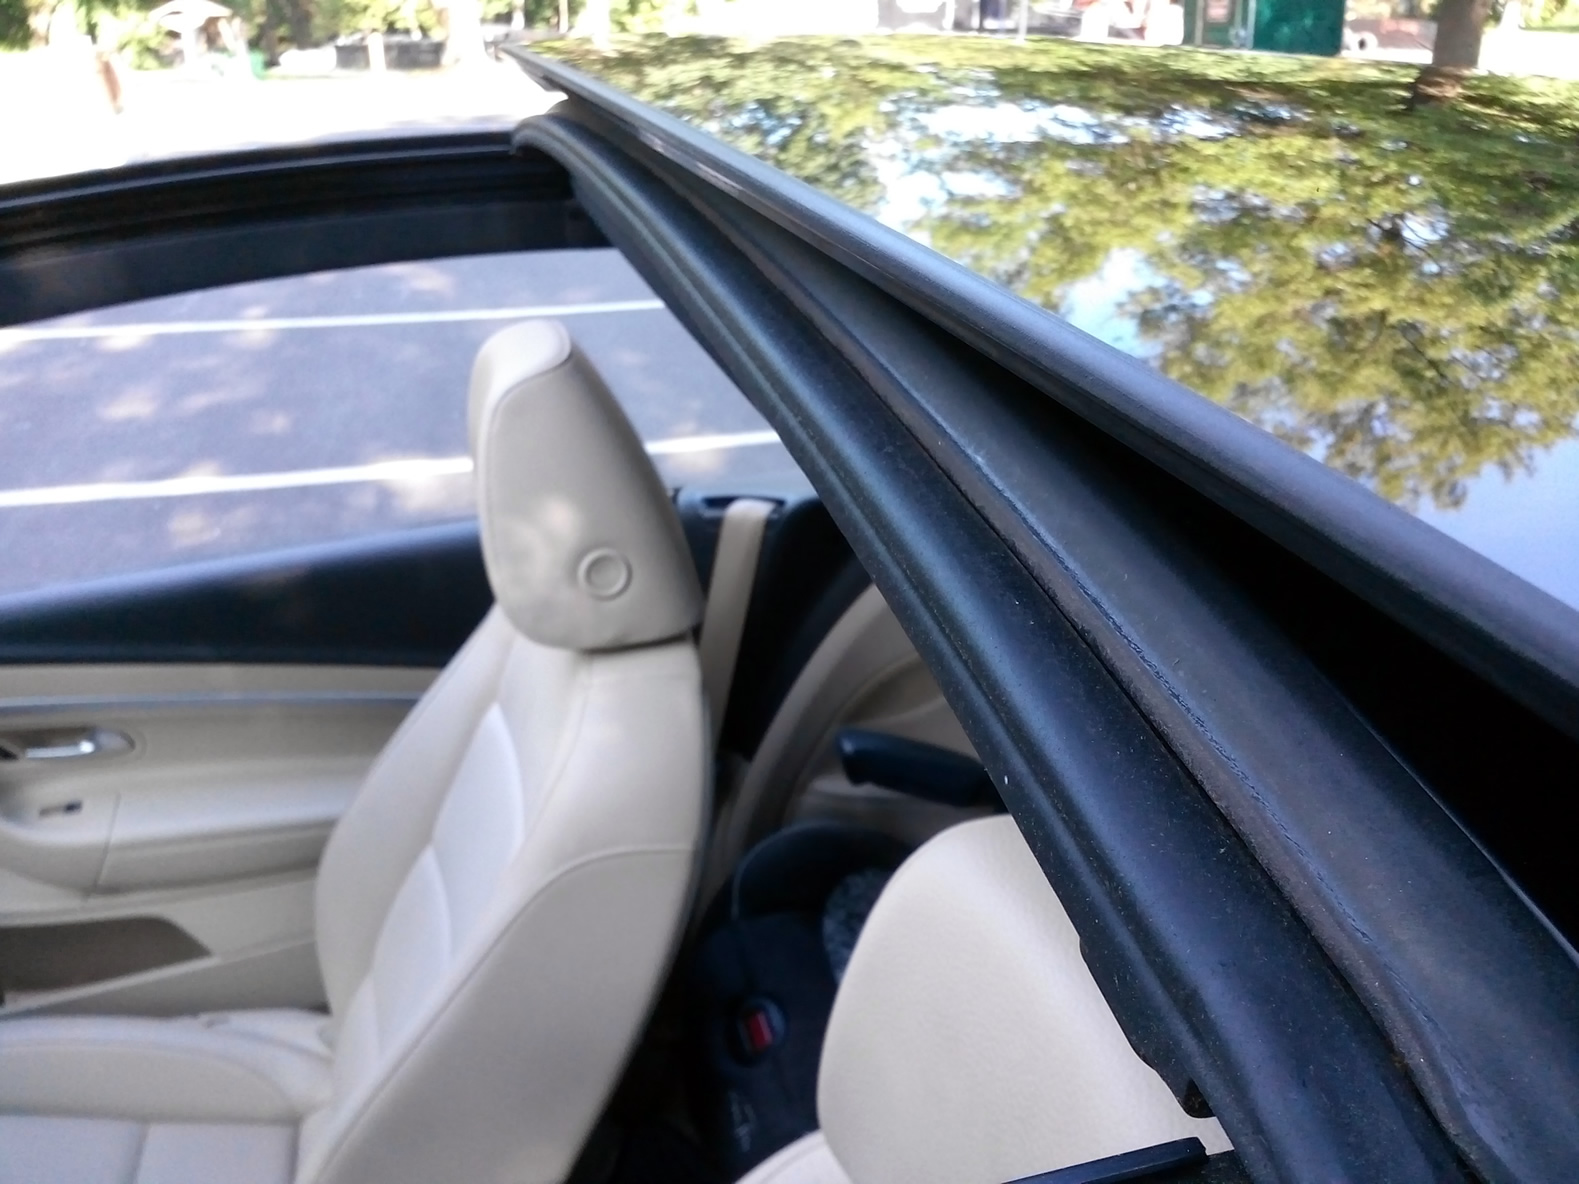 How To Lubricate Volkswagen Eos Roof To Prevent And Fix